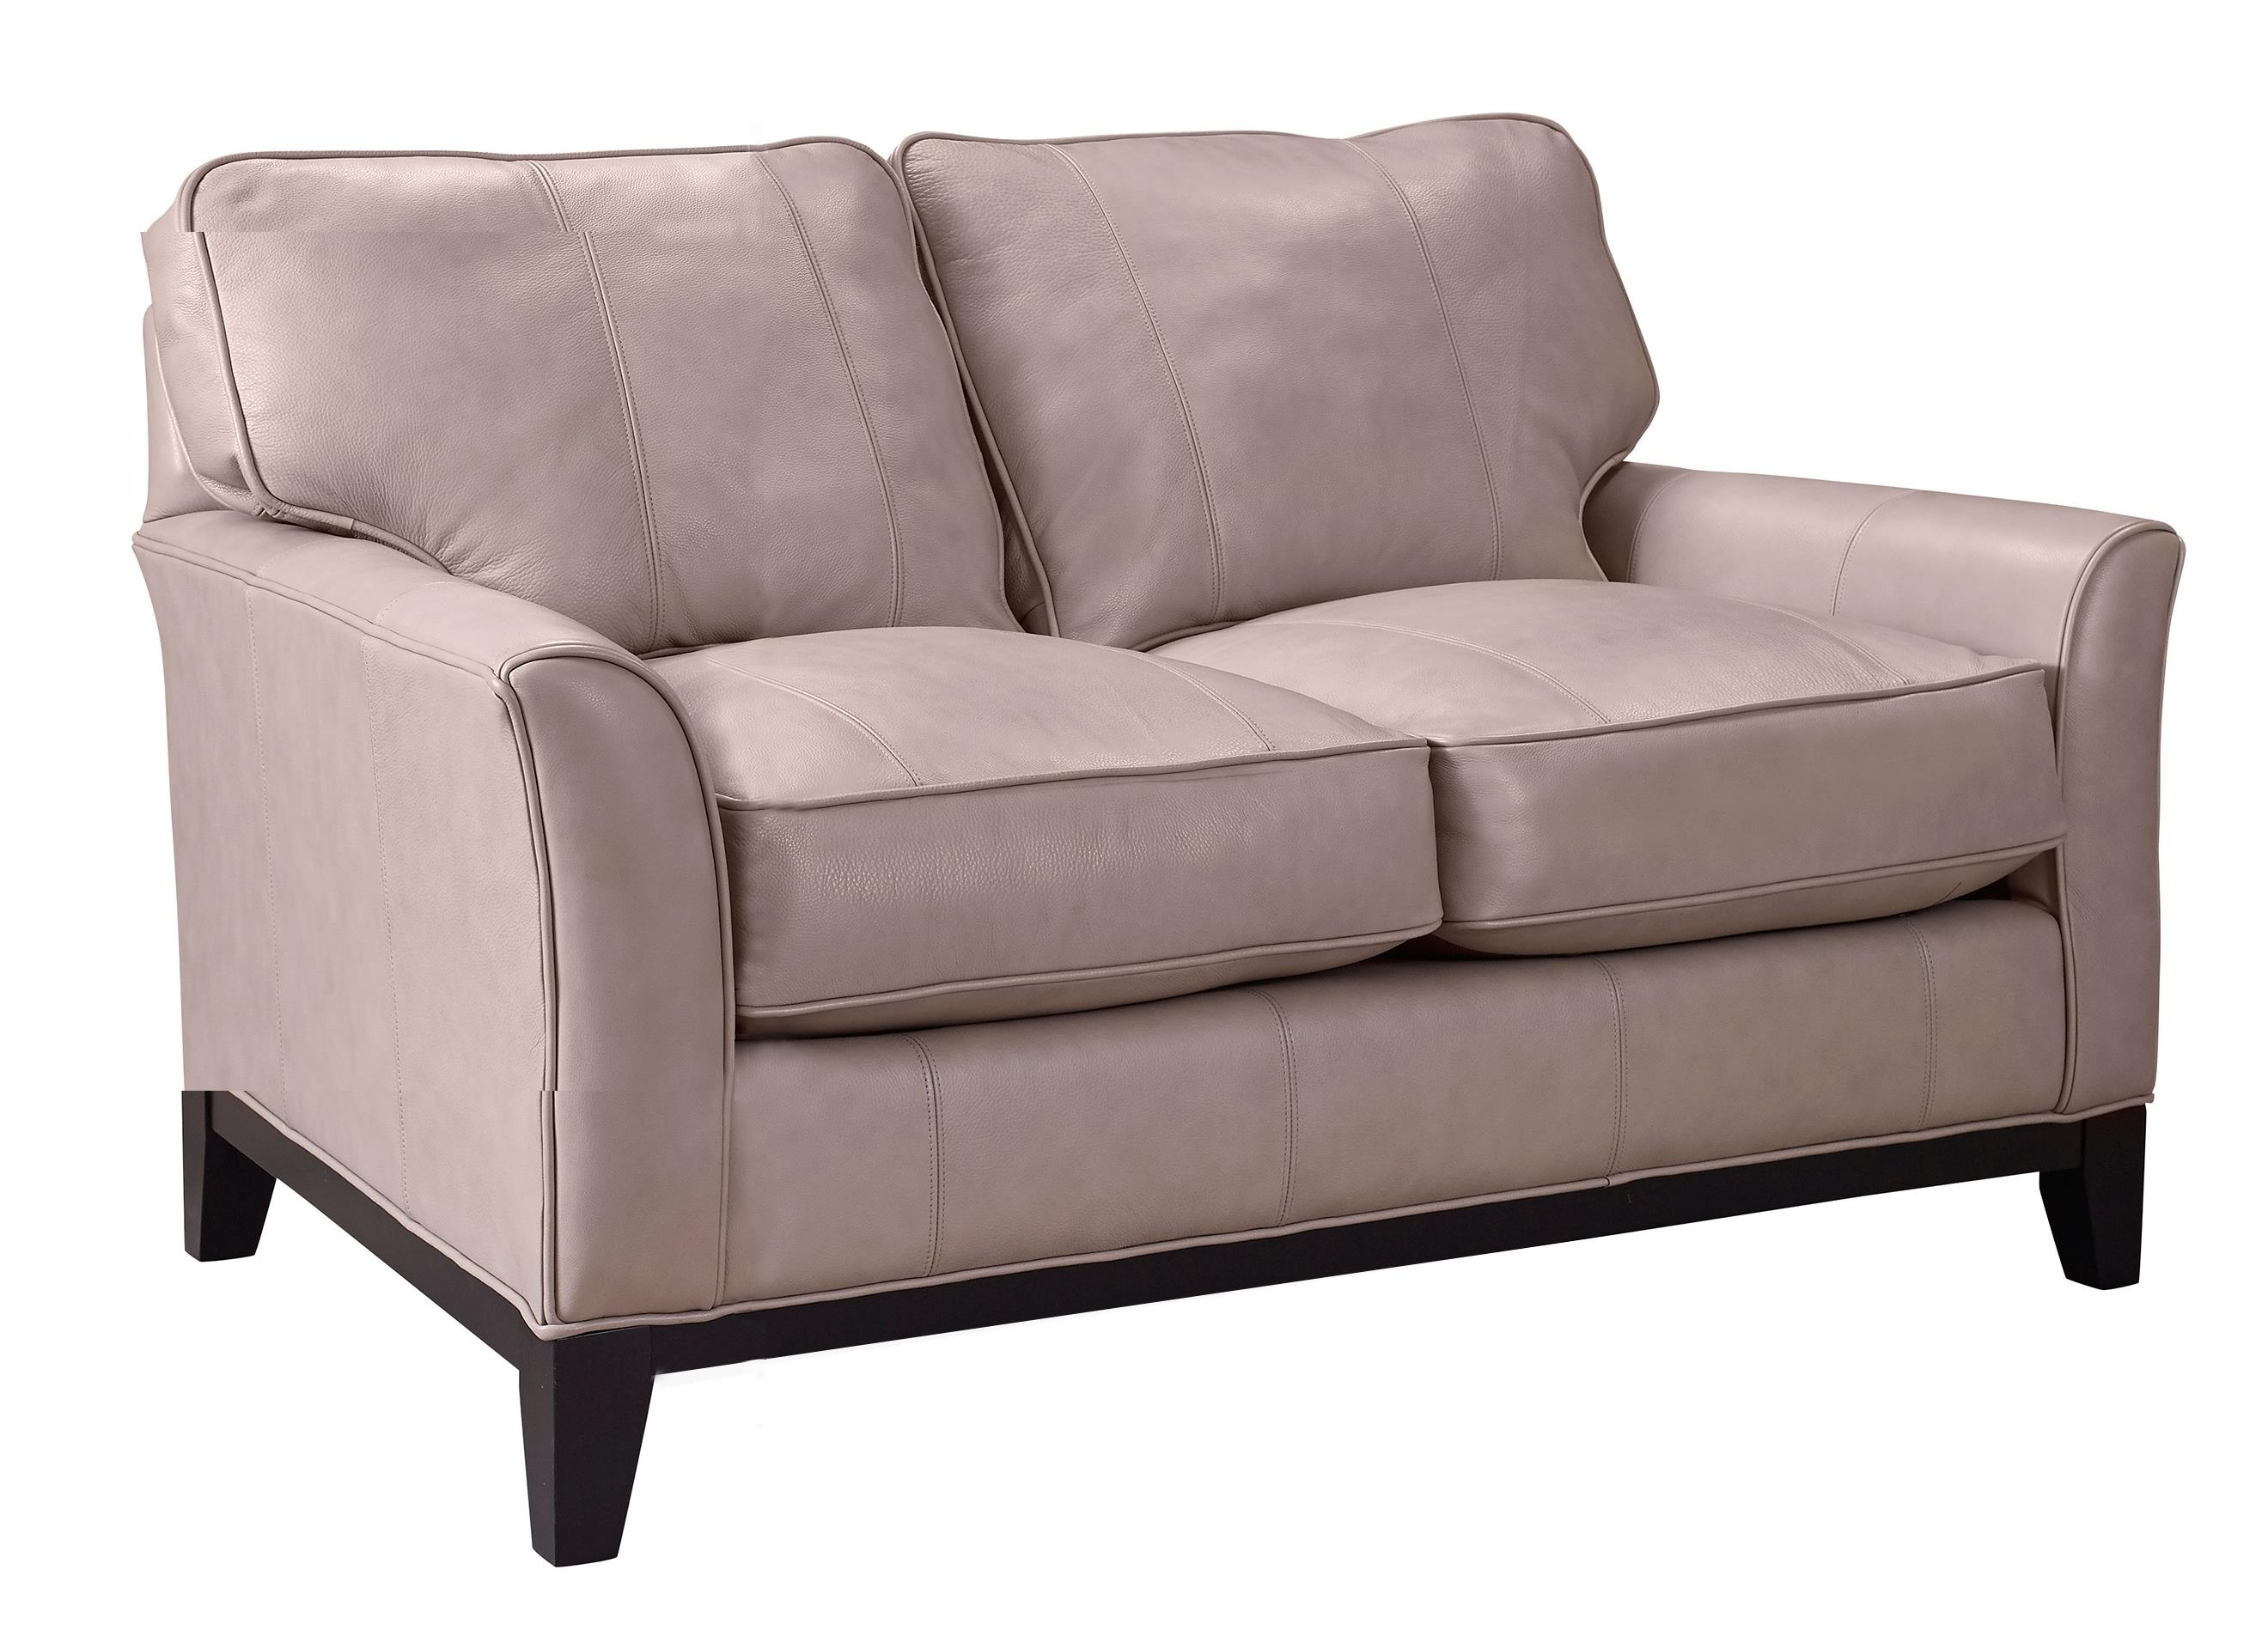 Broyhill Furniture Perspectives Loveseat - Item Number: L4445-1-0011-80